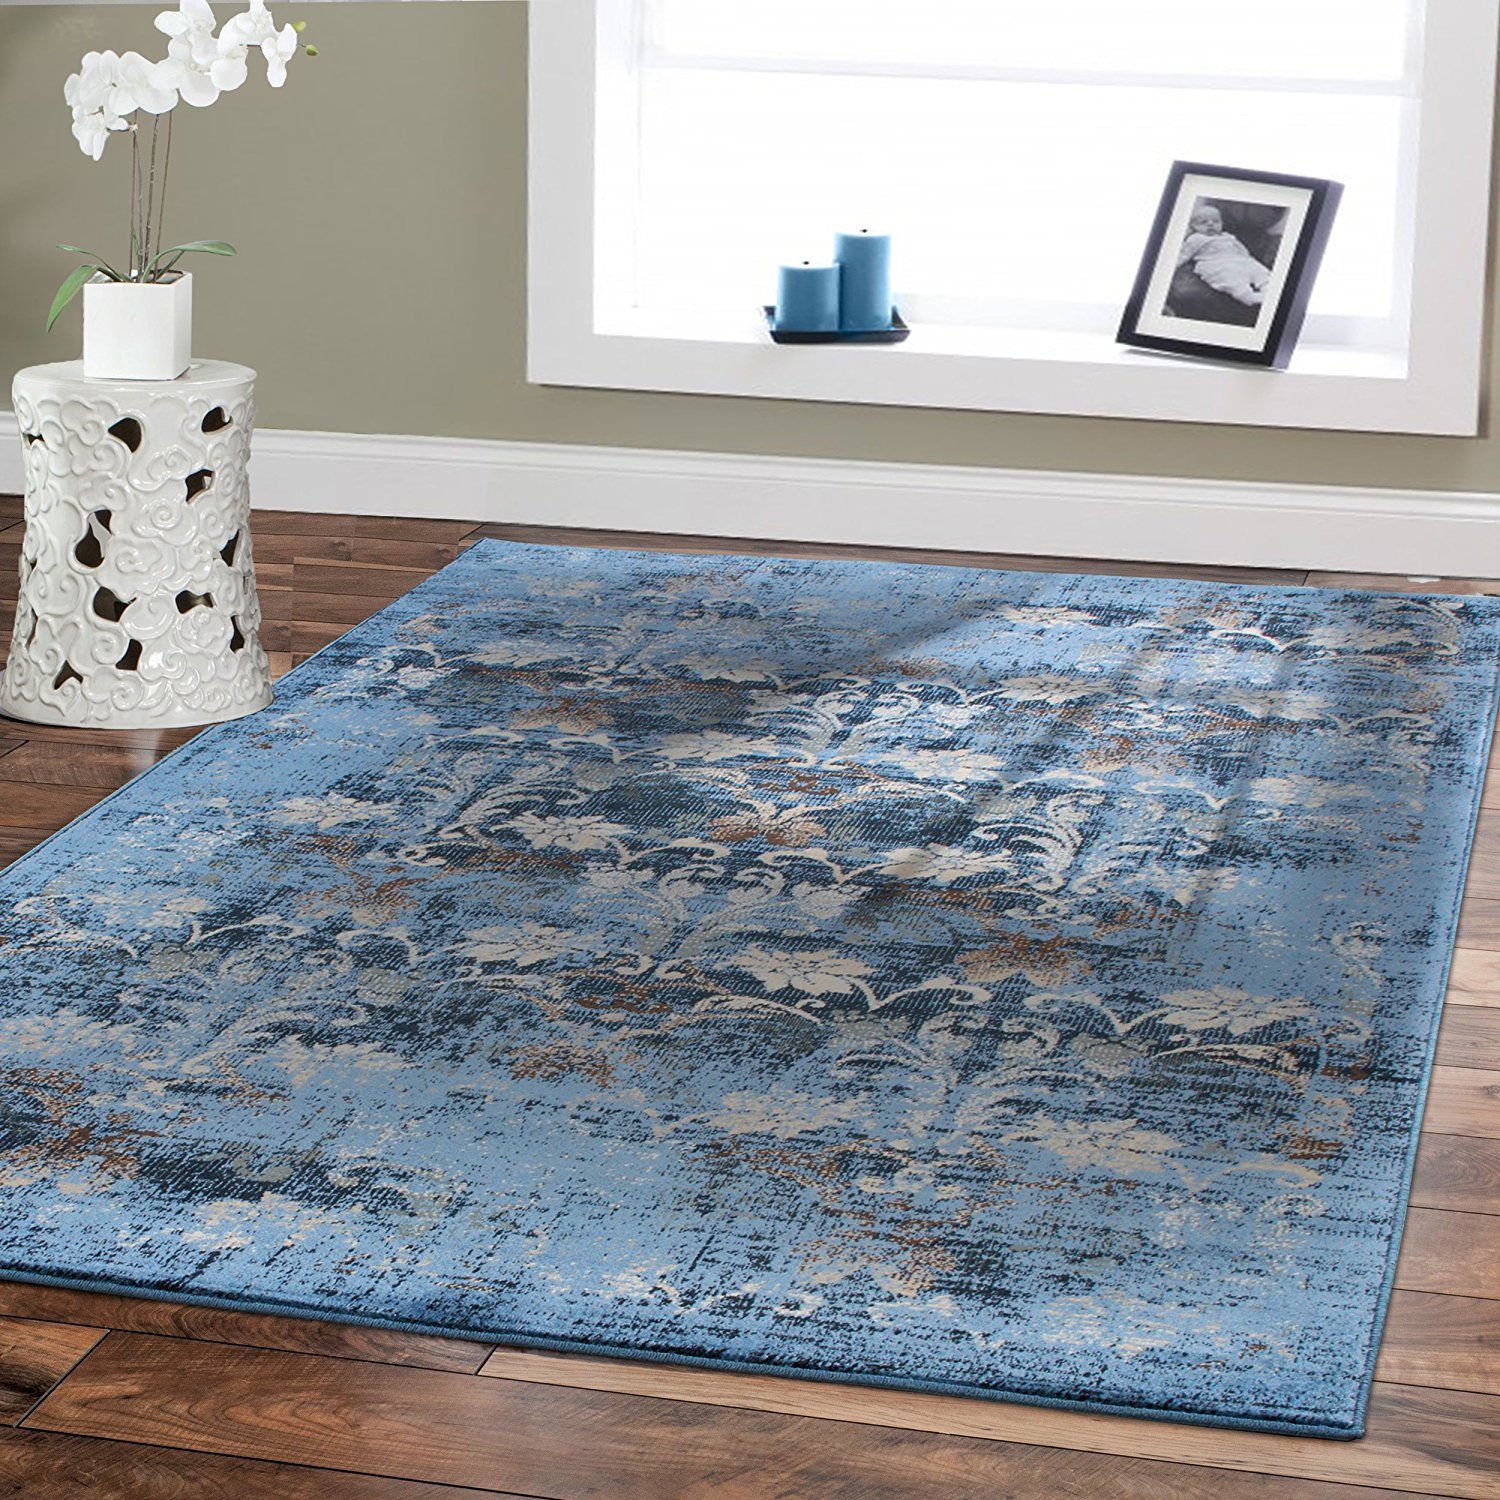 Awesome Premium Rugs Large 8x11 Rugs For Living Room 8x10 Area Rugs Under Table 8x10  Area Rugs